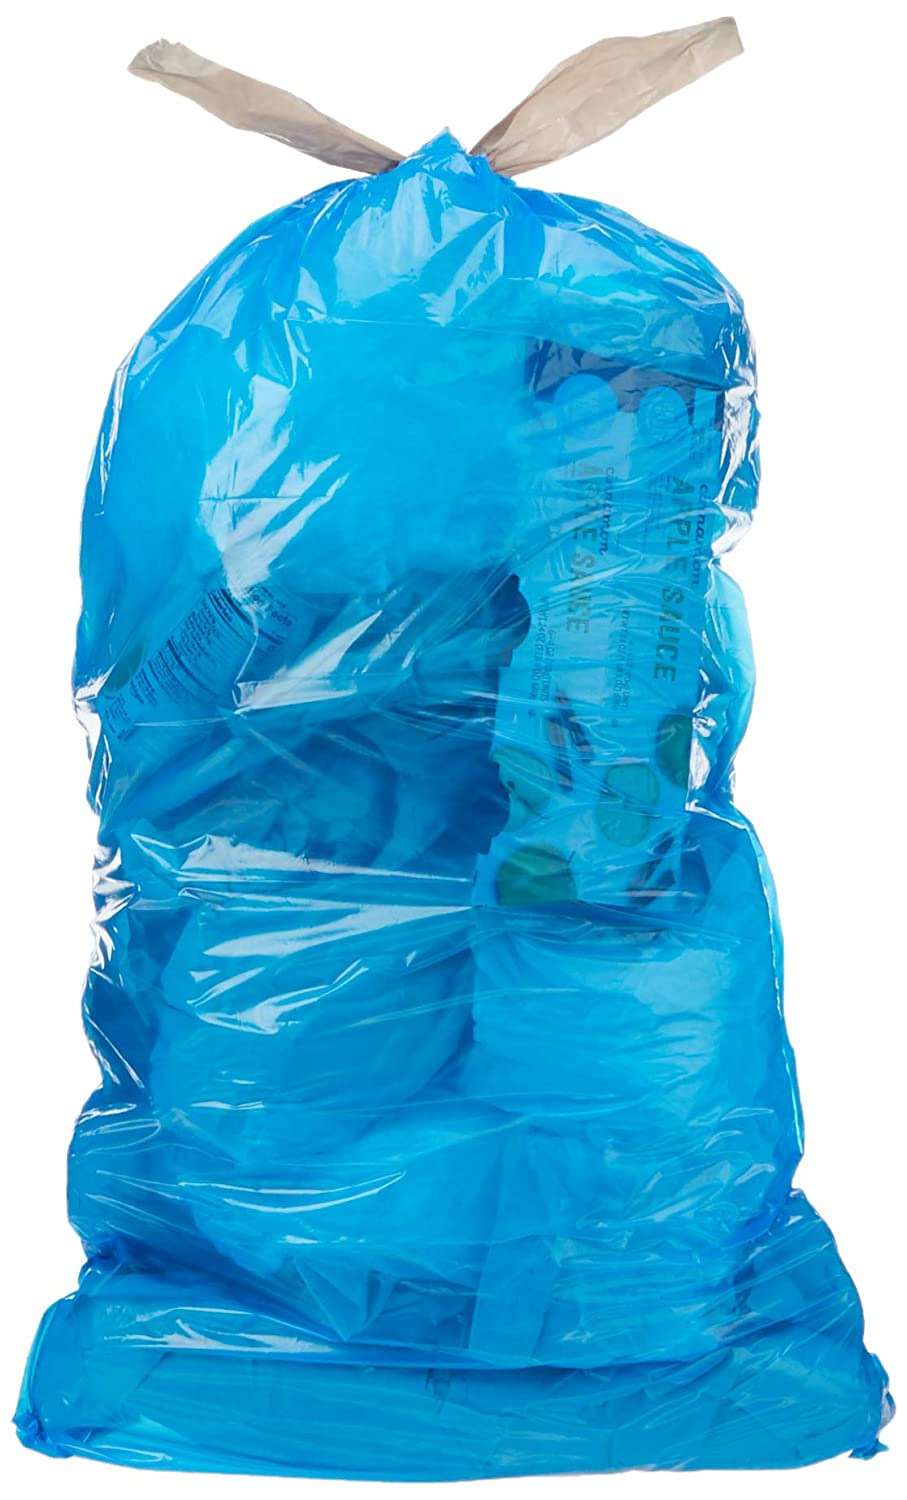 AmazonCommercial 13 Gallon Blue Recycling Bags /w Drawstrings - 0.7 MIL - 45 Count